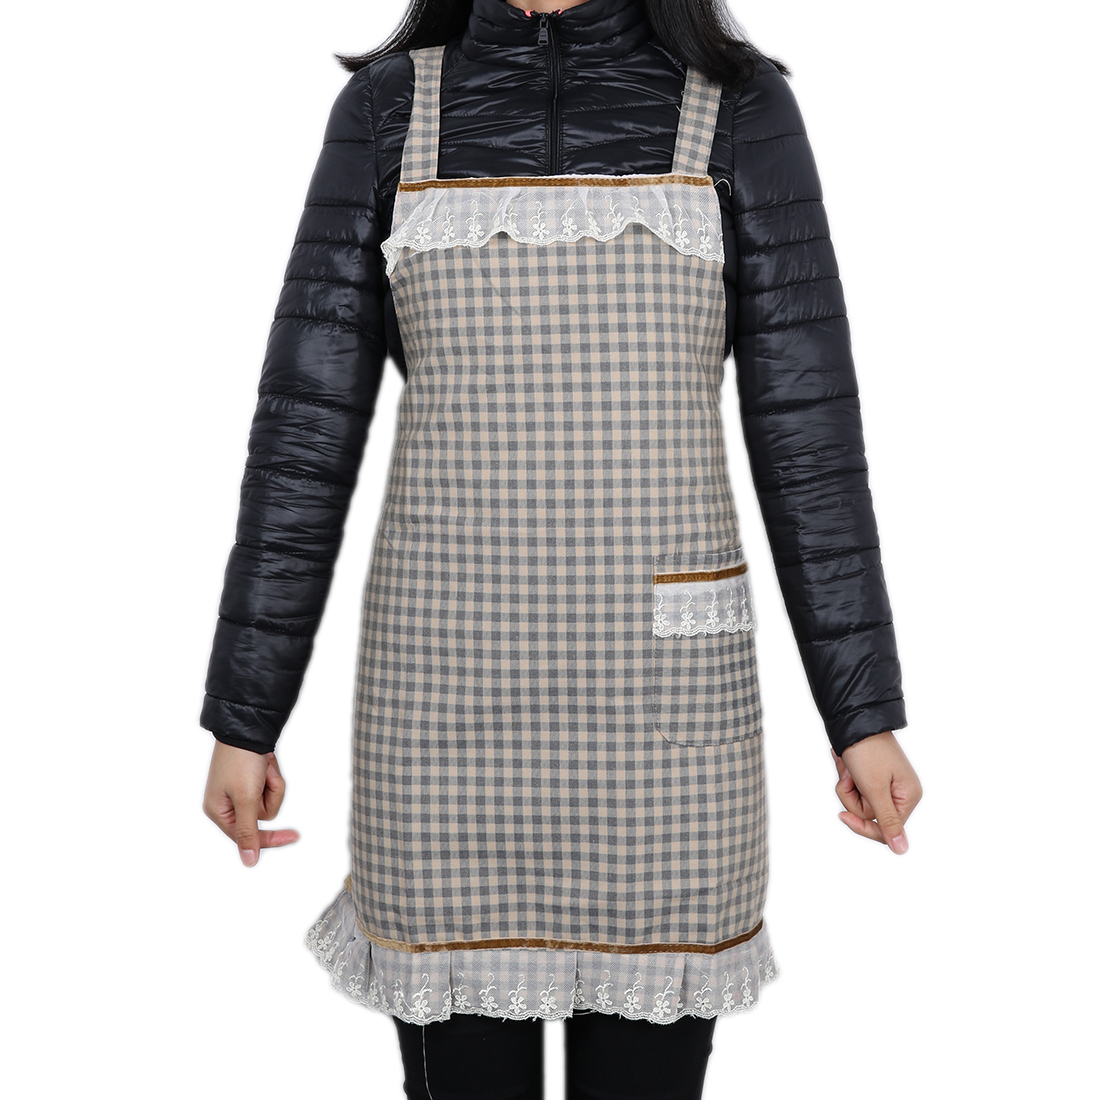 Grid Pocket Kitchen Apron for Women Carbon Color